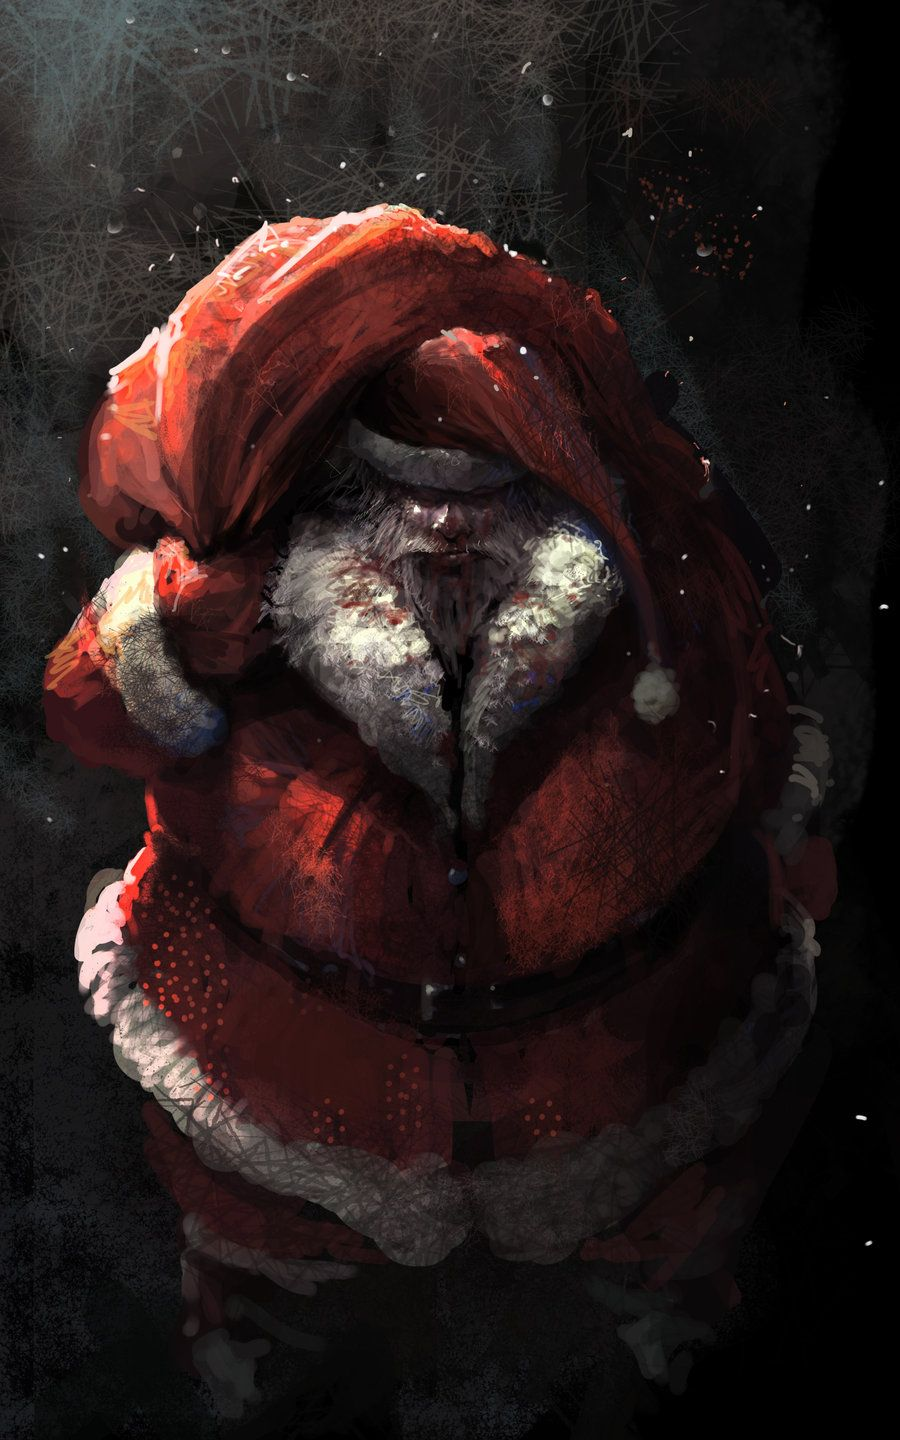 F Cking Christmas By Artcobain On Deviantart Christmas Artwork Scary Christmas Dark Christmas